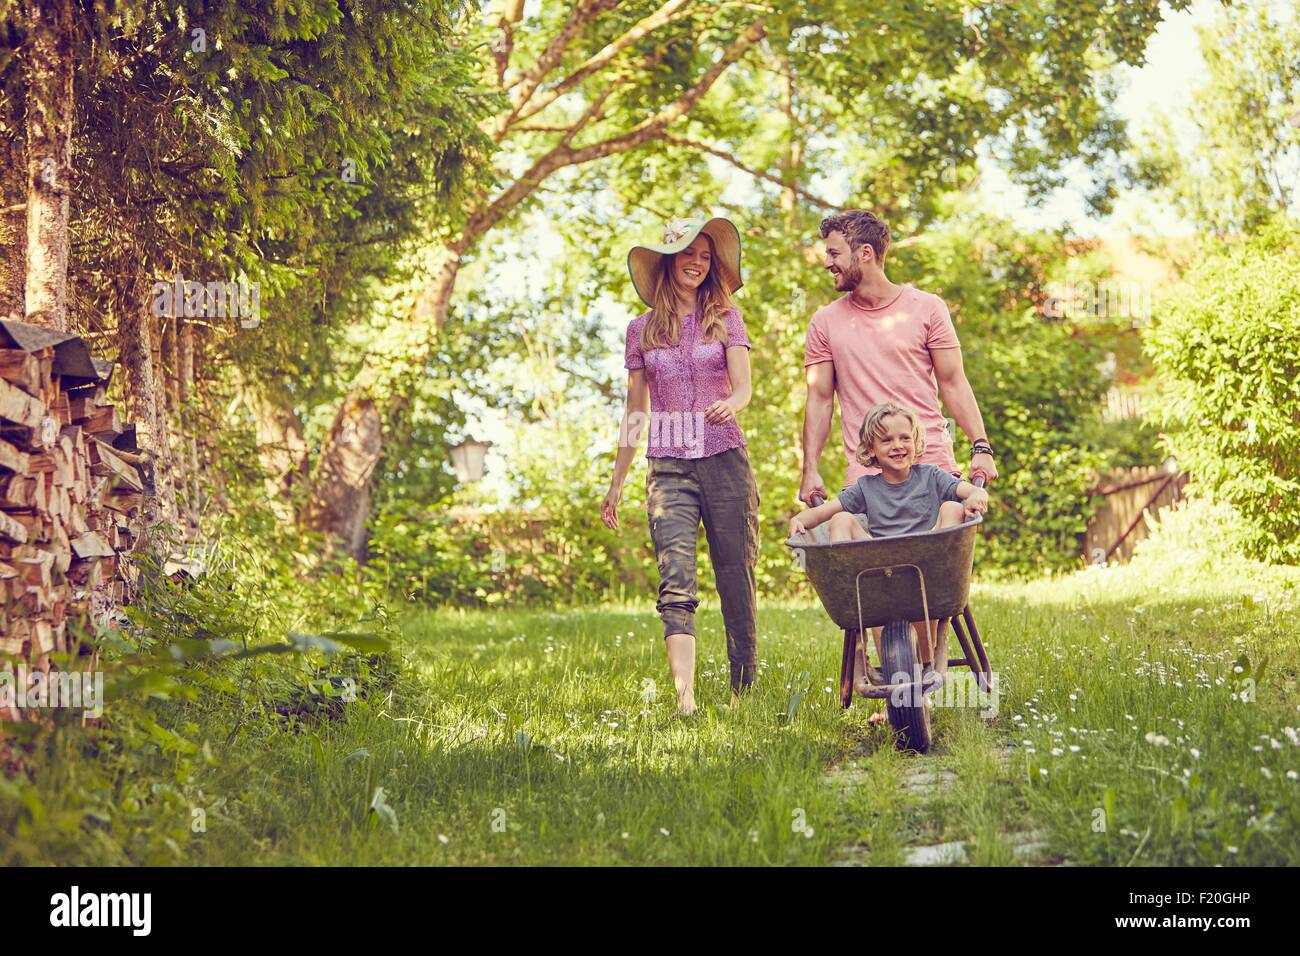 Young family outdoors, father pushing son in wheelbarrow - Stock Image